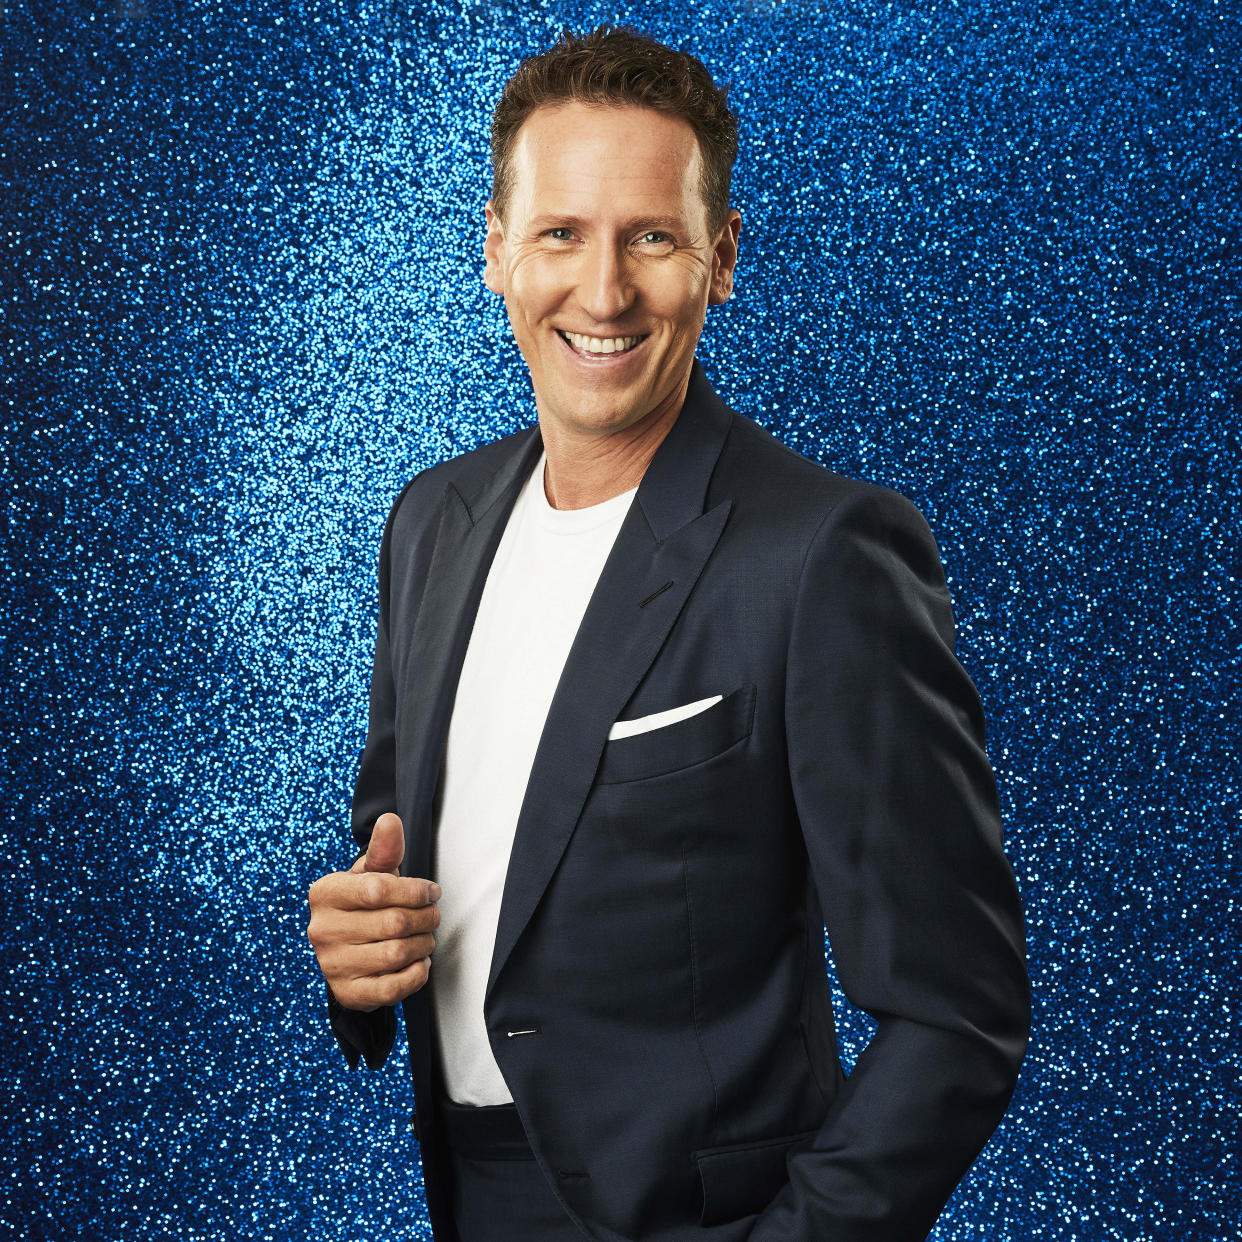 Dancing on Ice: Brendan Cole will take part in S14 (ITV)